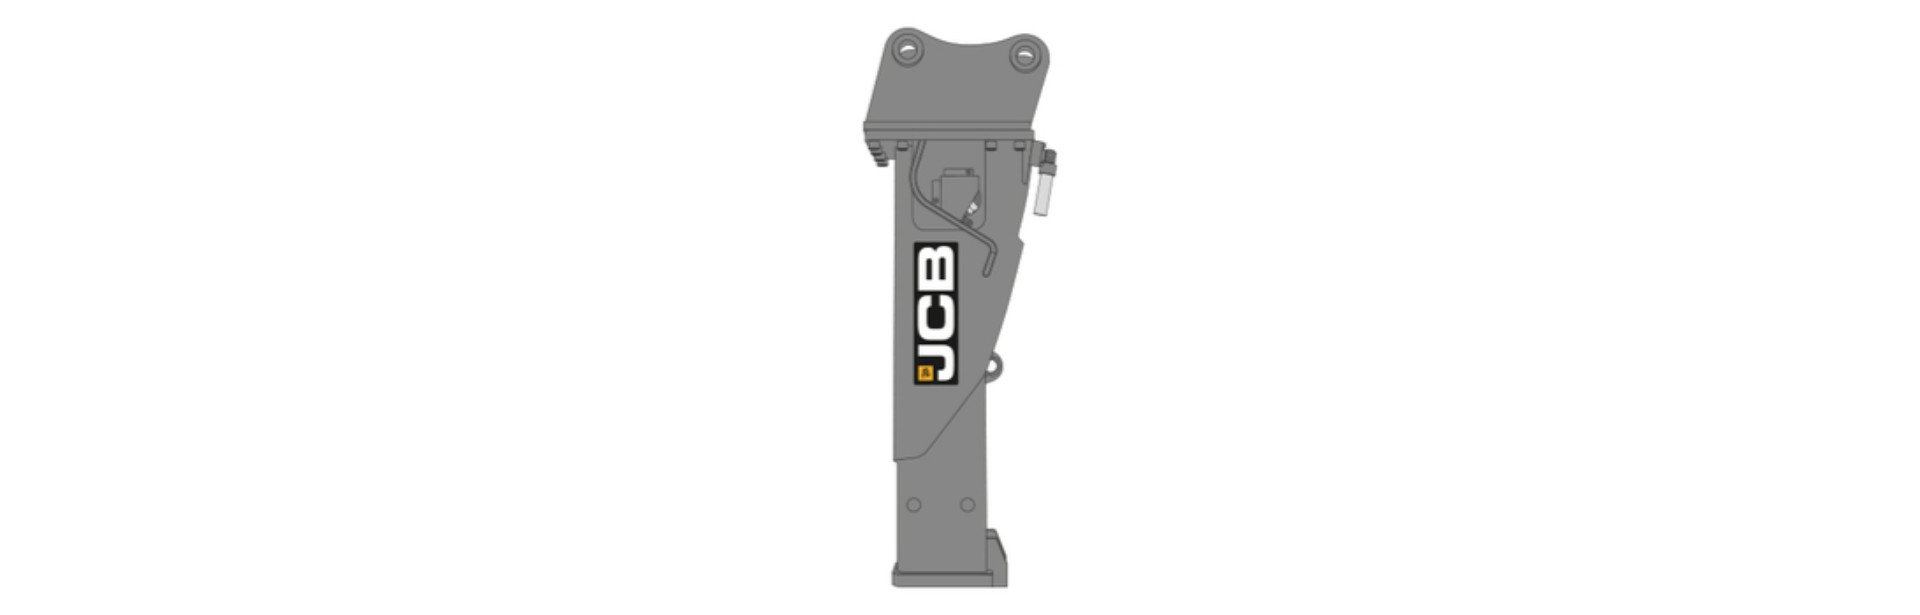 JCB Hydraulic Breakers Dubai